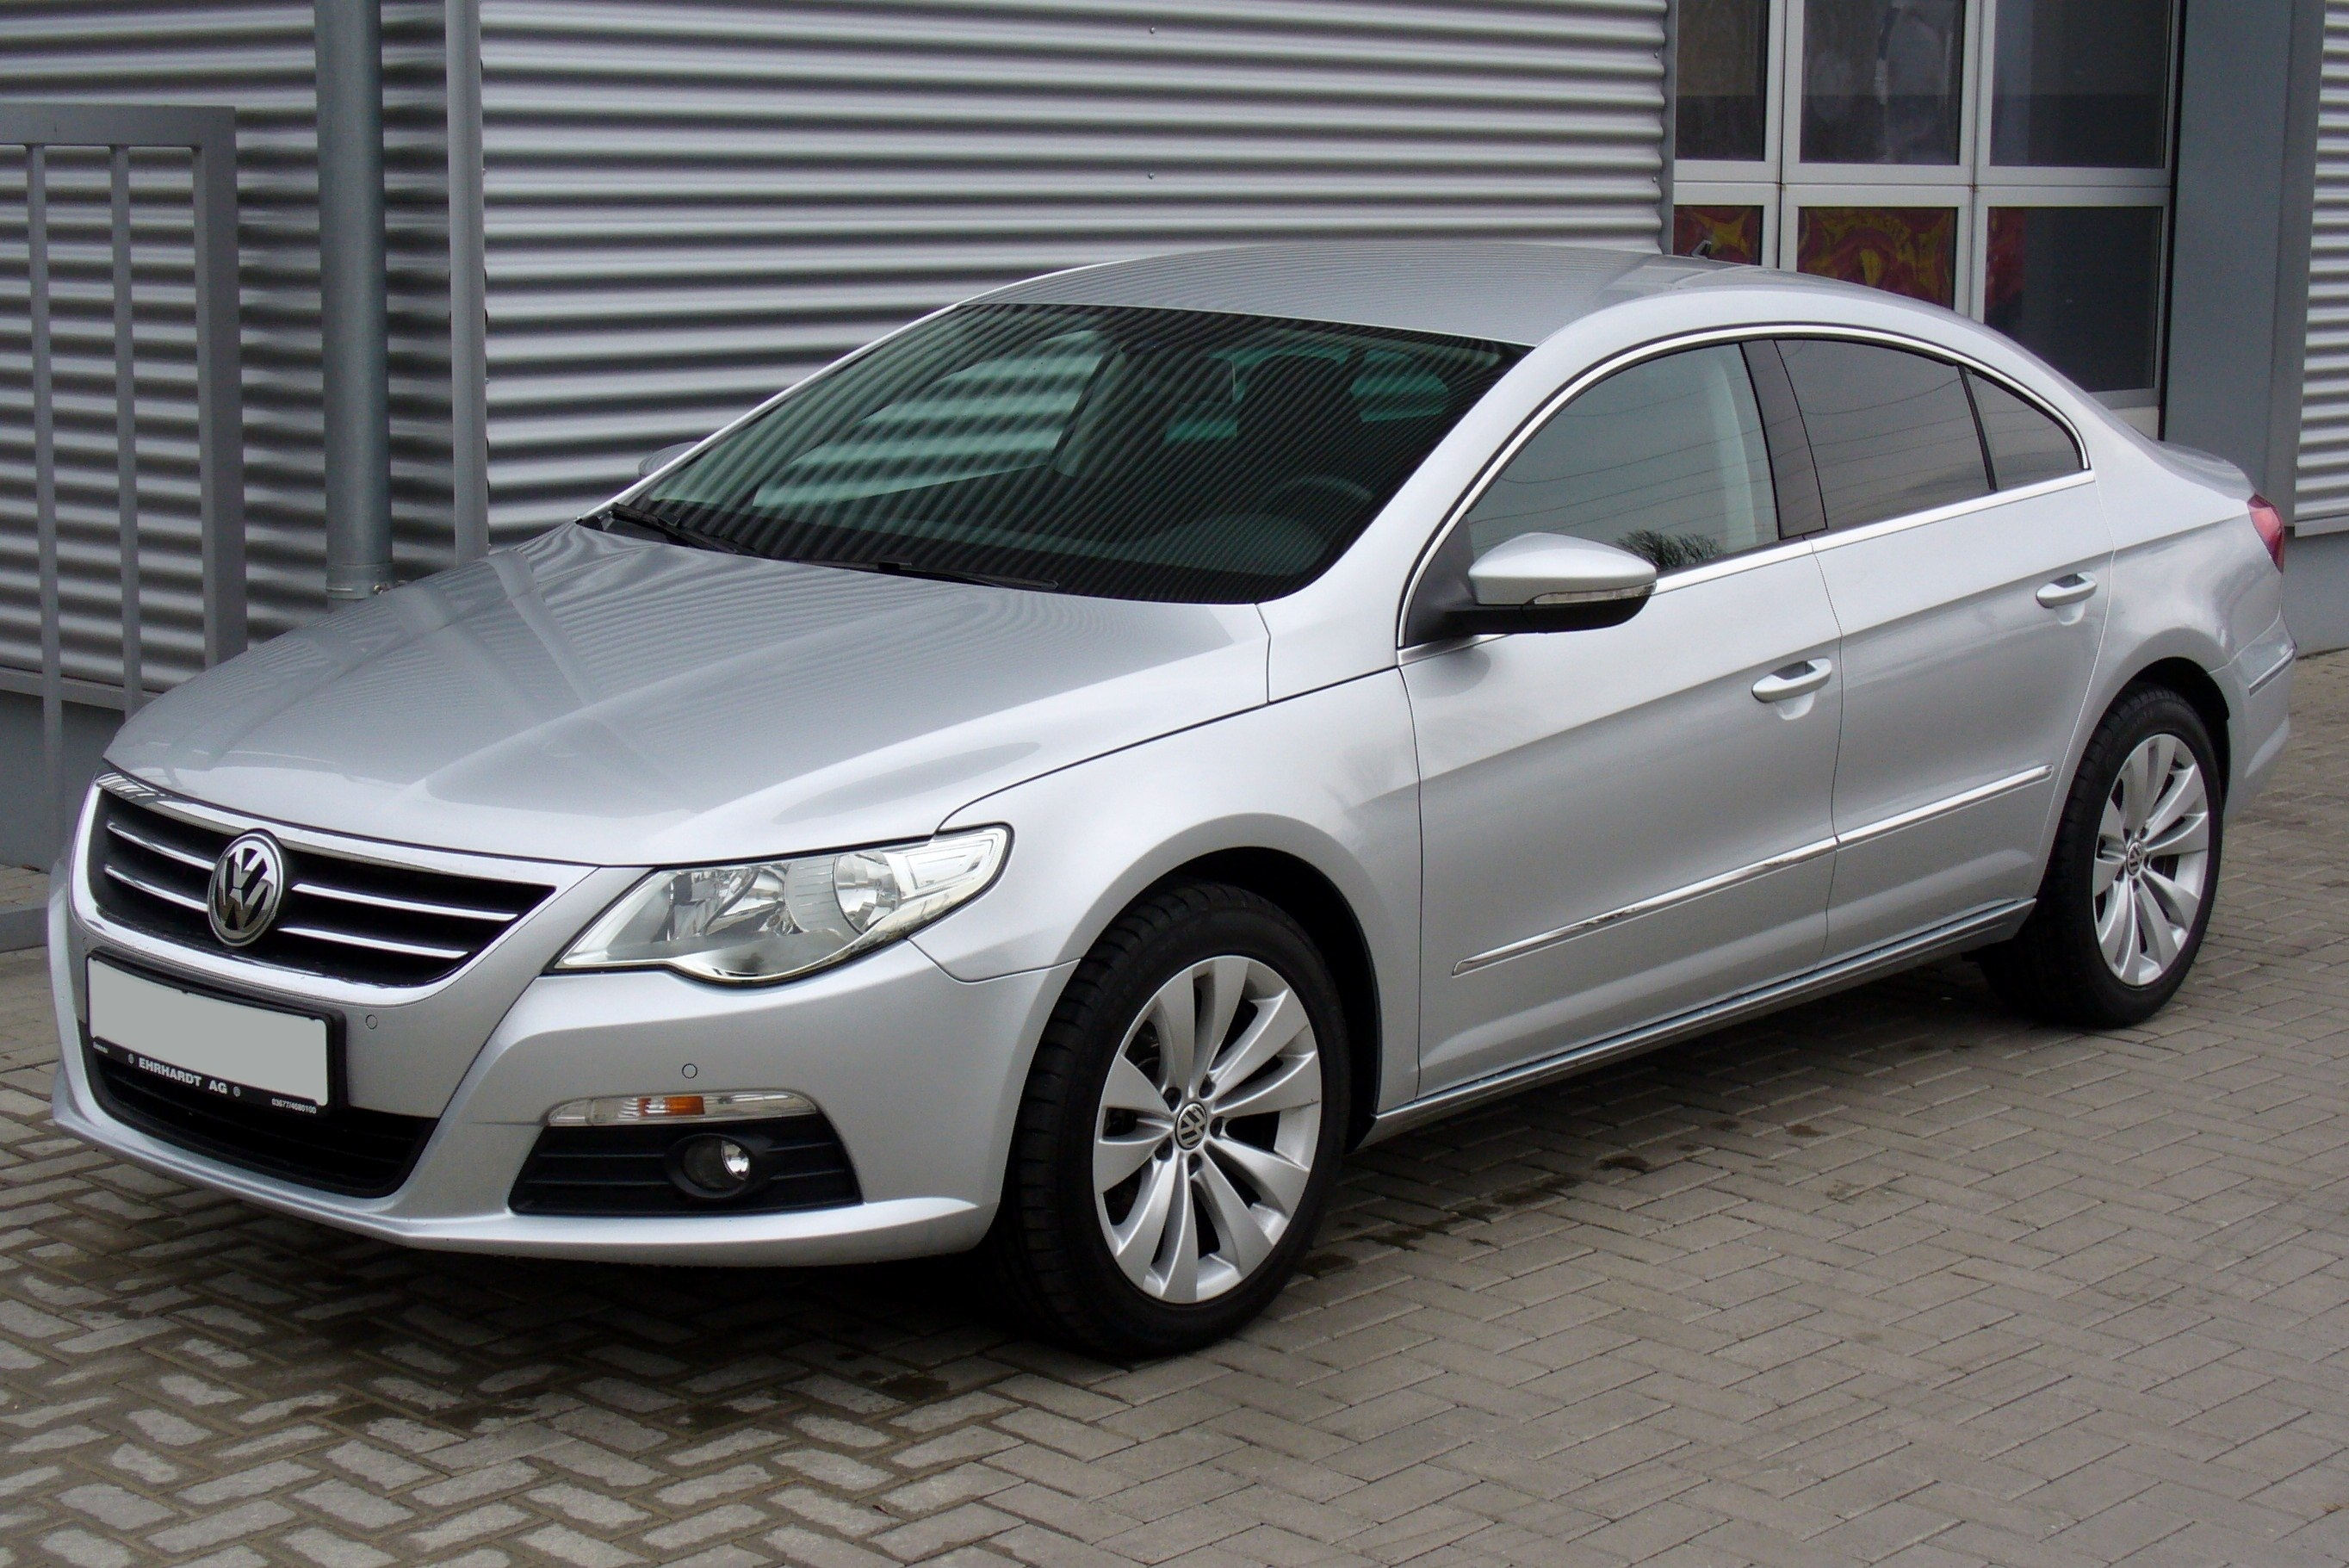 Volkswagen Passat CC 2.0 2011 photo - 1